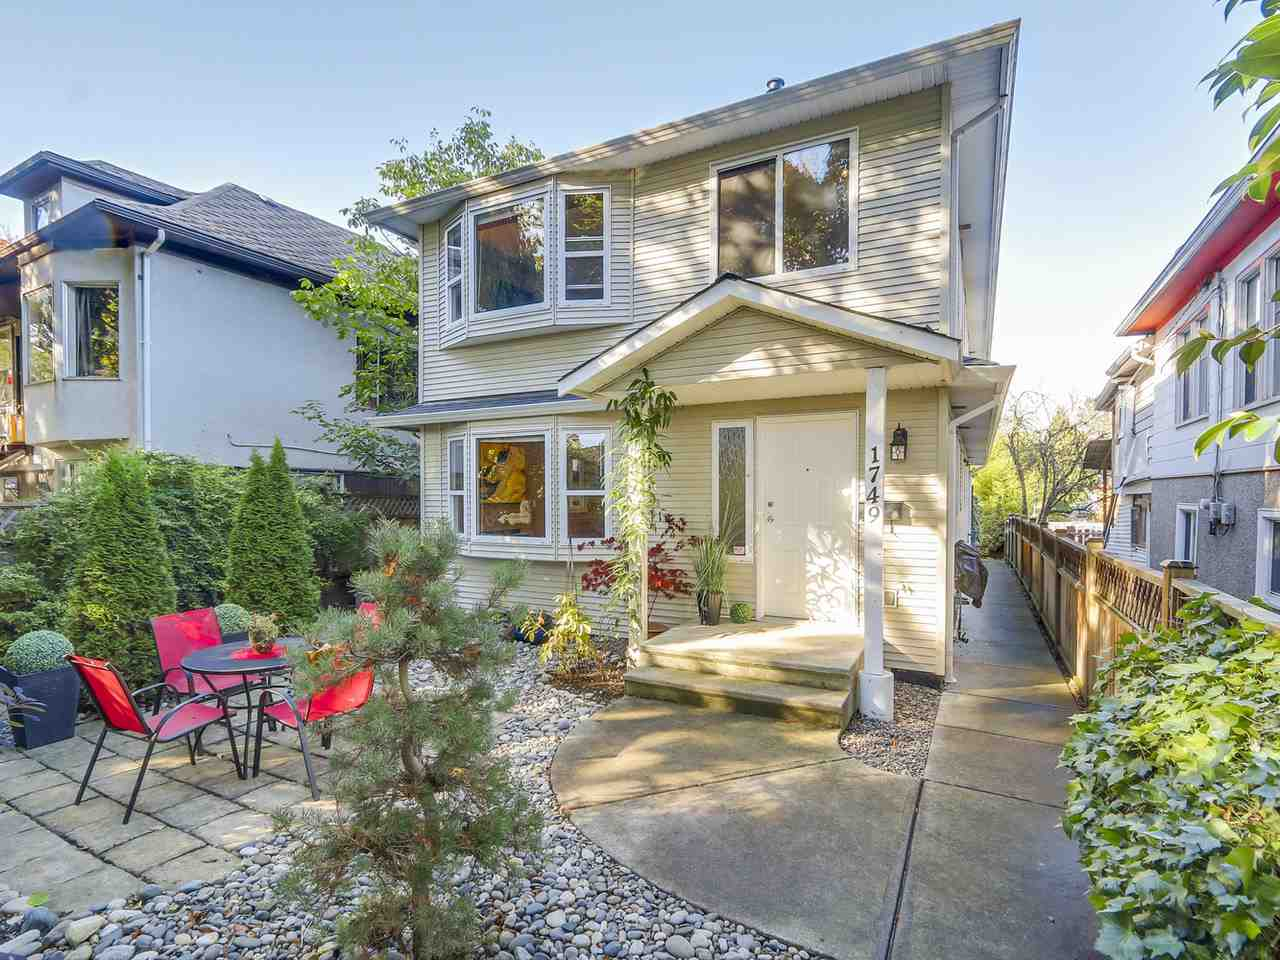 Main Photo: 1749 E 13TH Avenue in Vancouver: Grandview VE House 1/2 Duplex for sale (Vancouver East)  : MLS®# R2115872